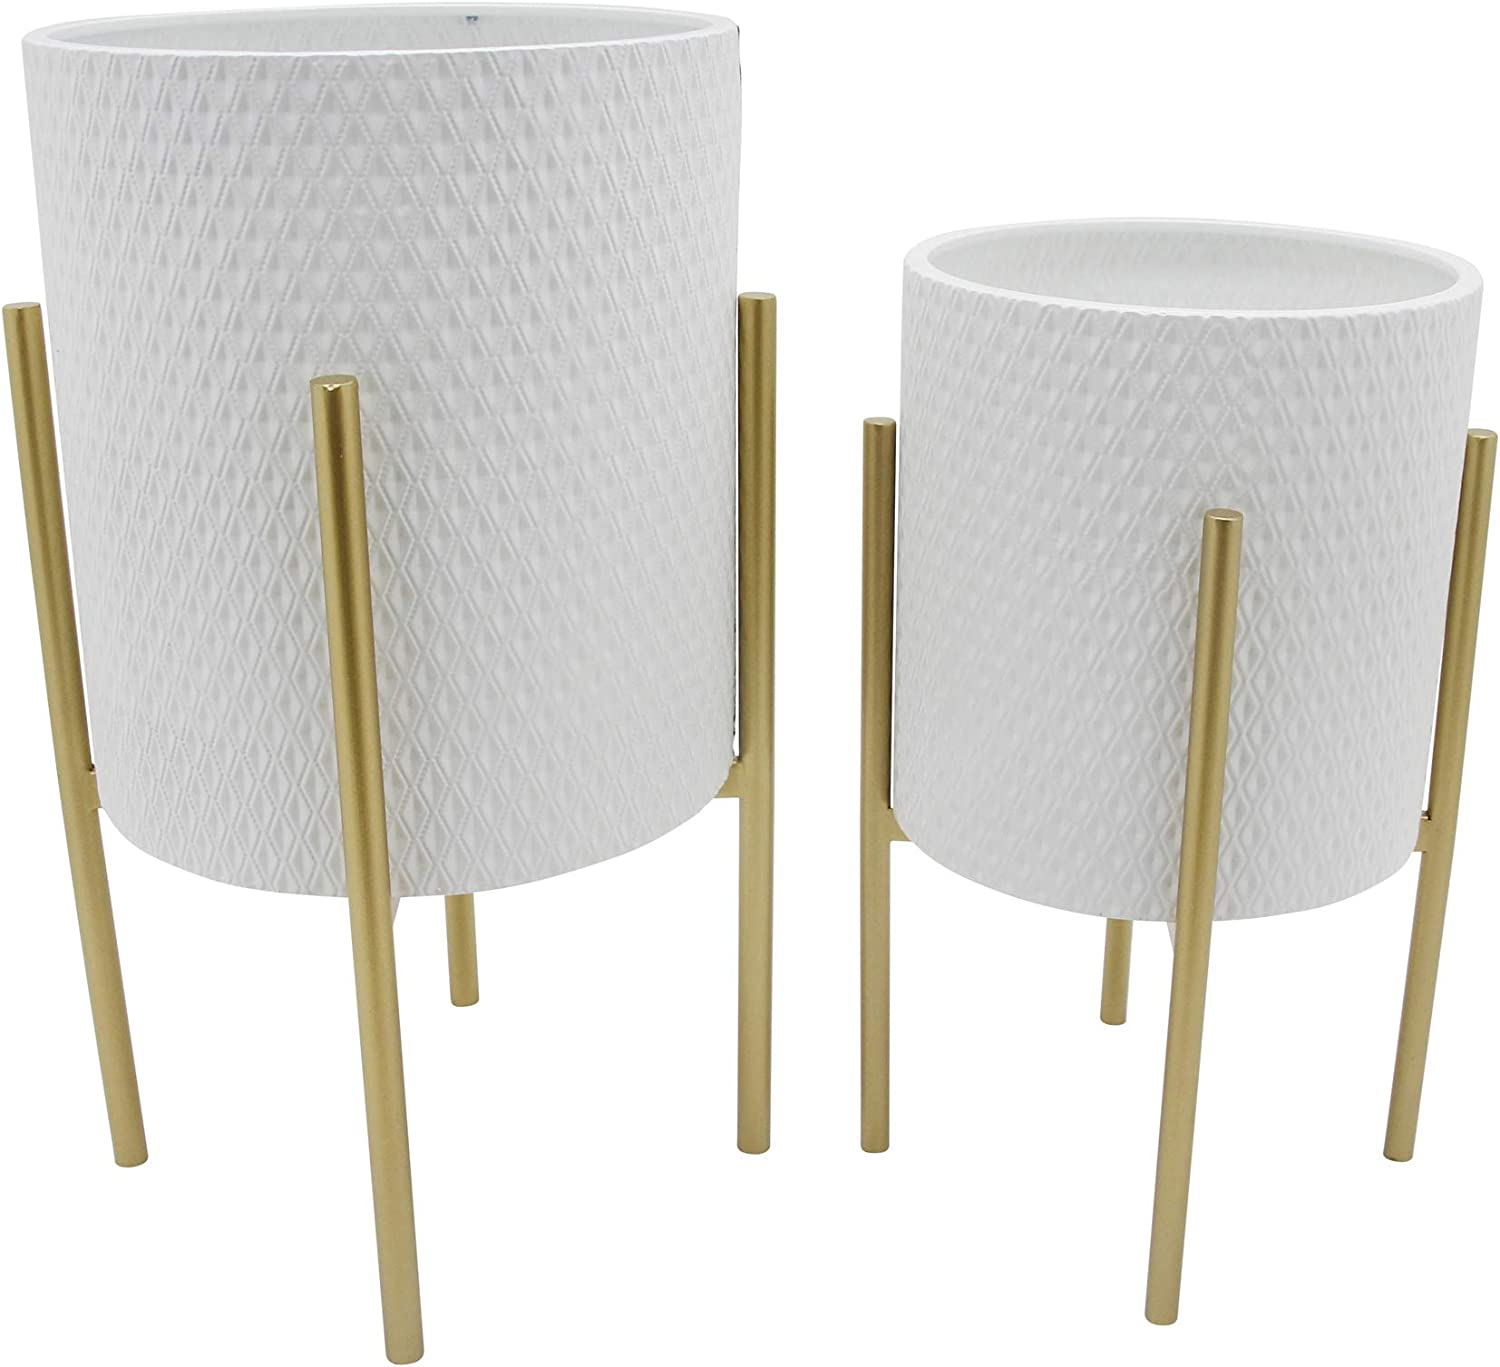 Sagebrook Home 12629-06 Honeycomb Planter On Metal Stand, White/Gold (Set of 2), 14''L x 14''W x 23''H, 2 Count